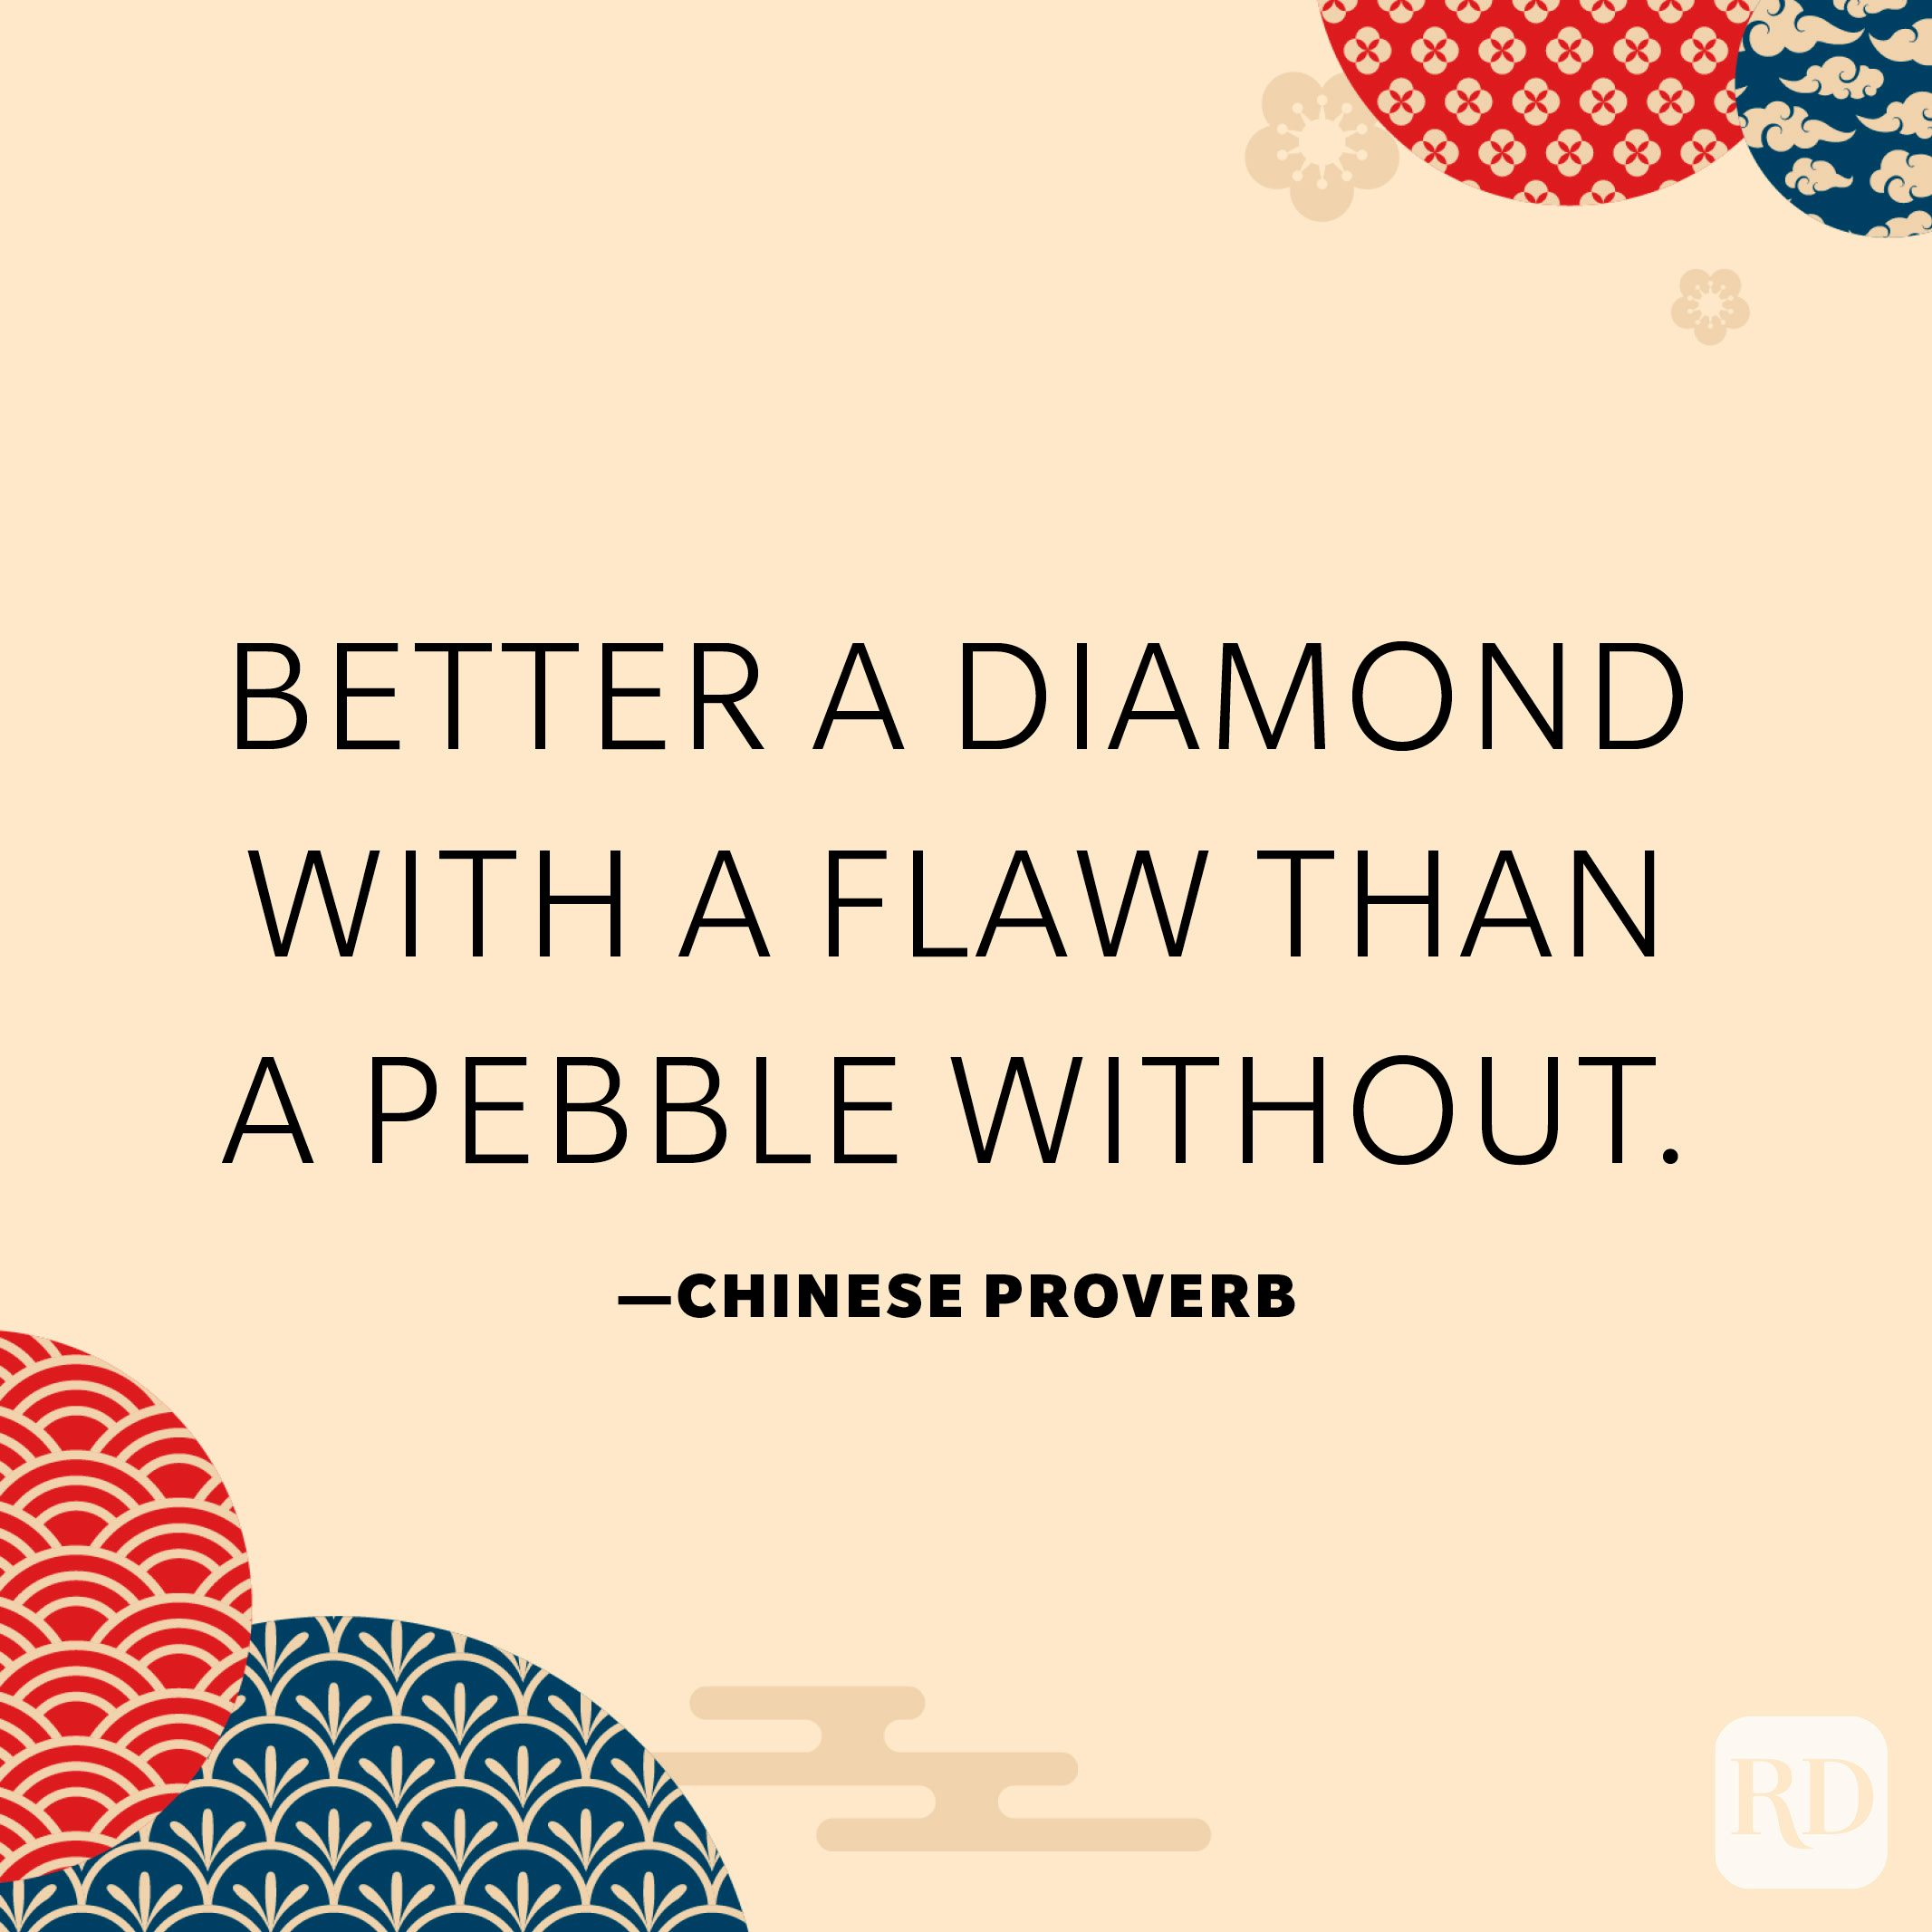 Better a diamond with a flaw than a pebble without.